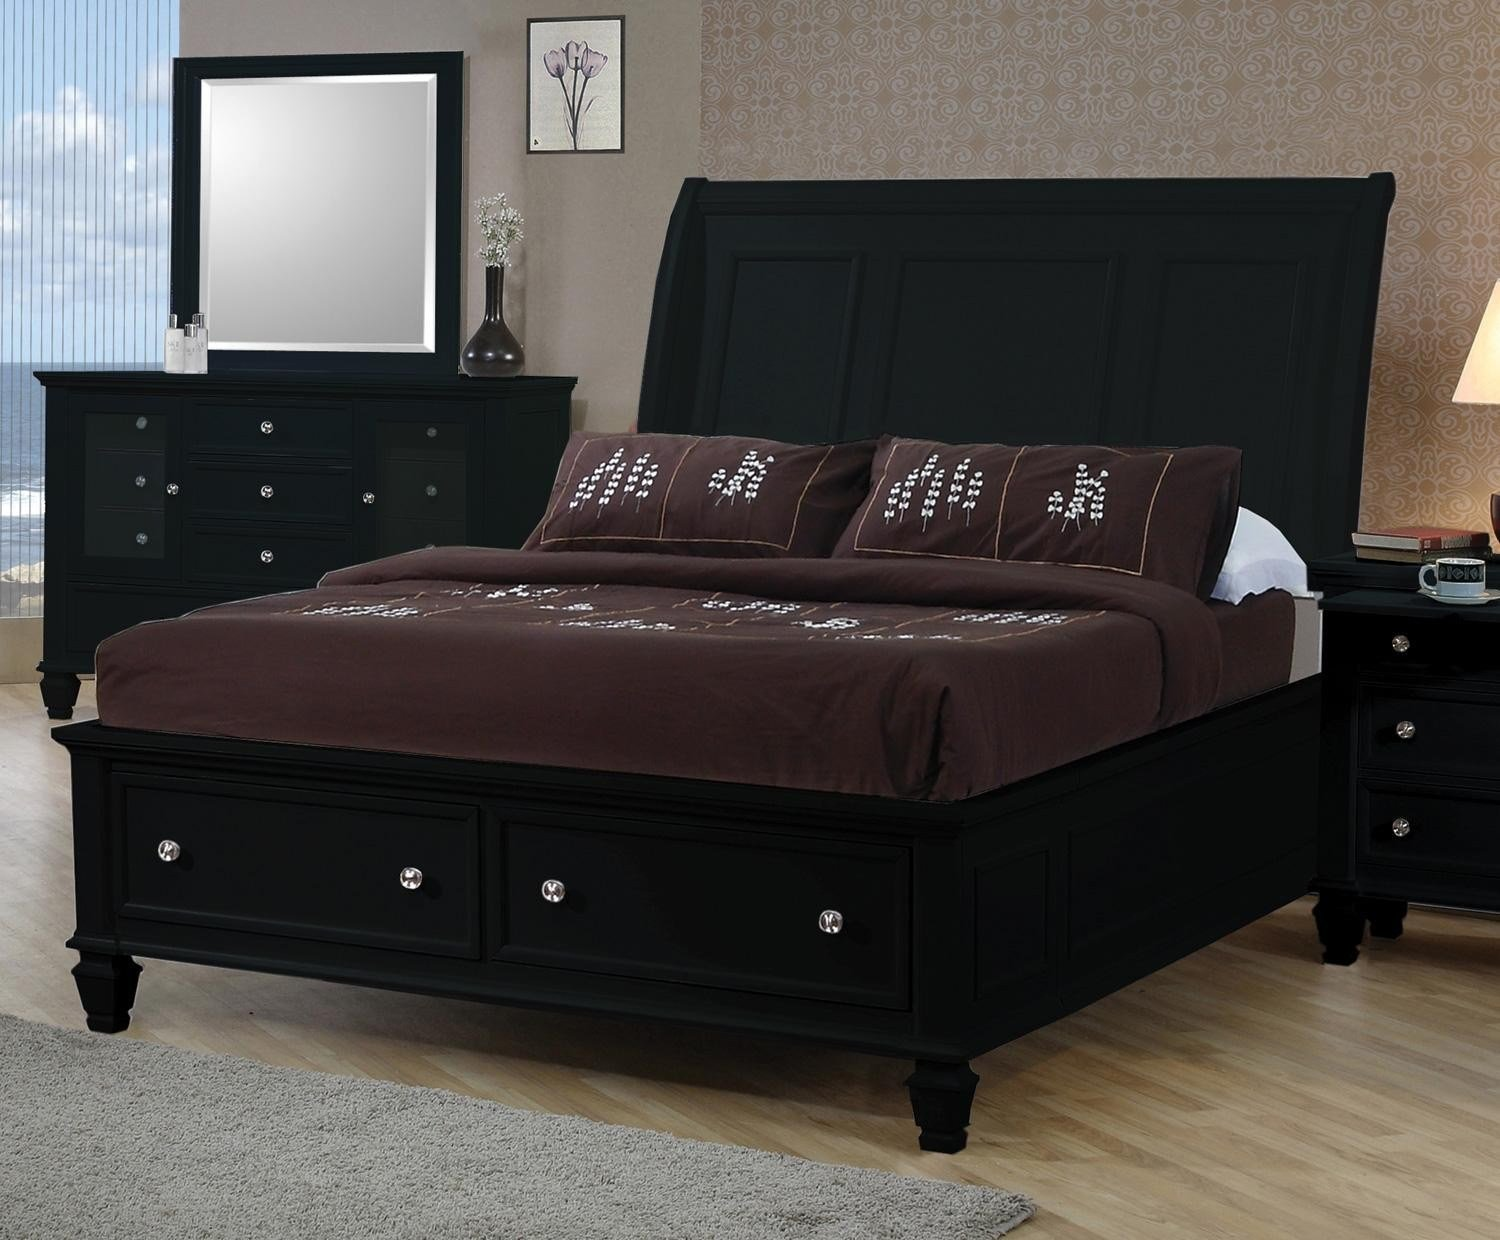 Best Cindy Crawford Bedroom Furniture Home Palm Springs Gray With Pictures